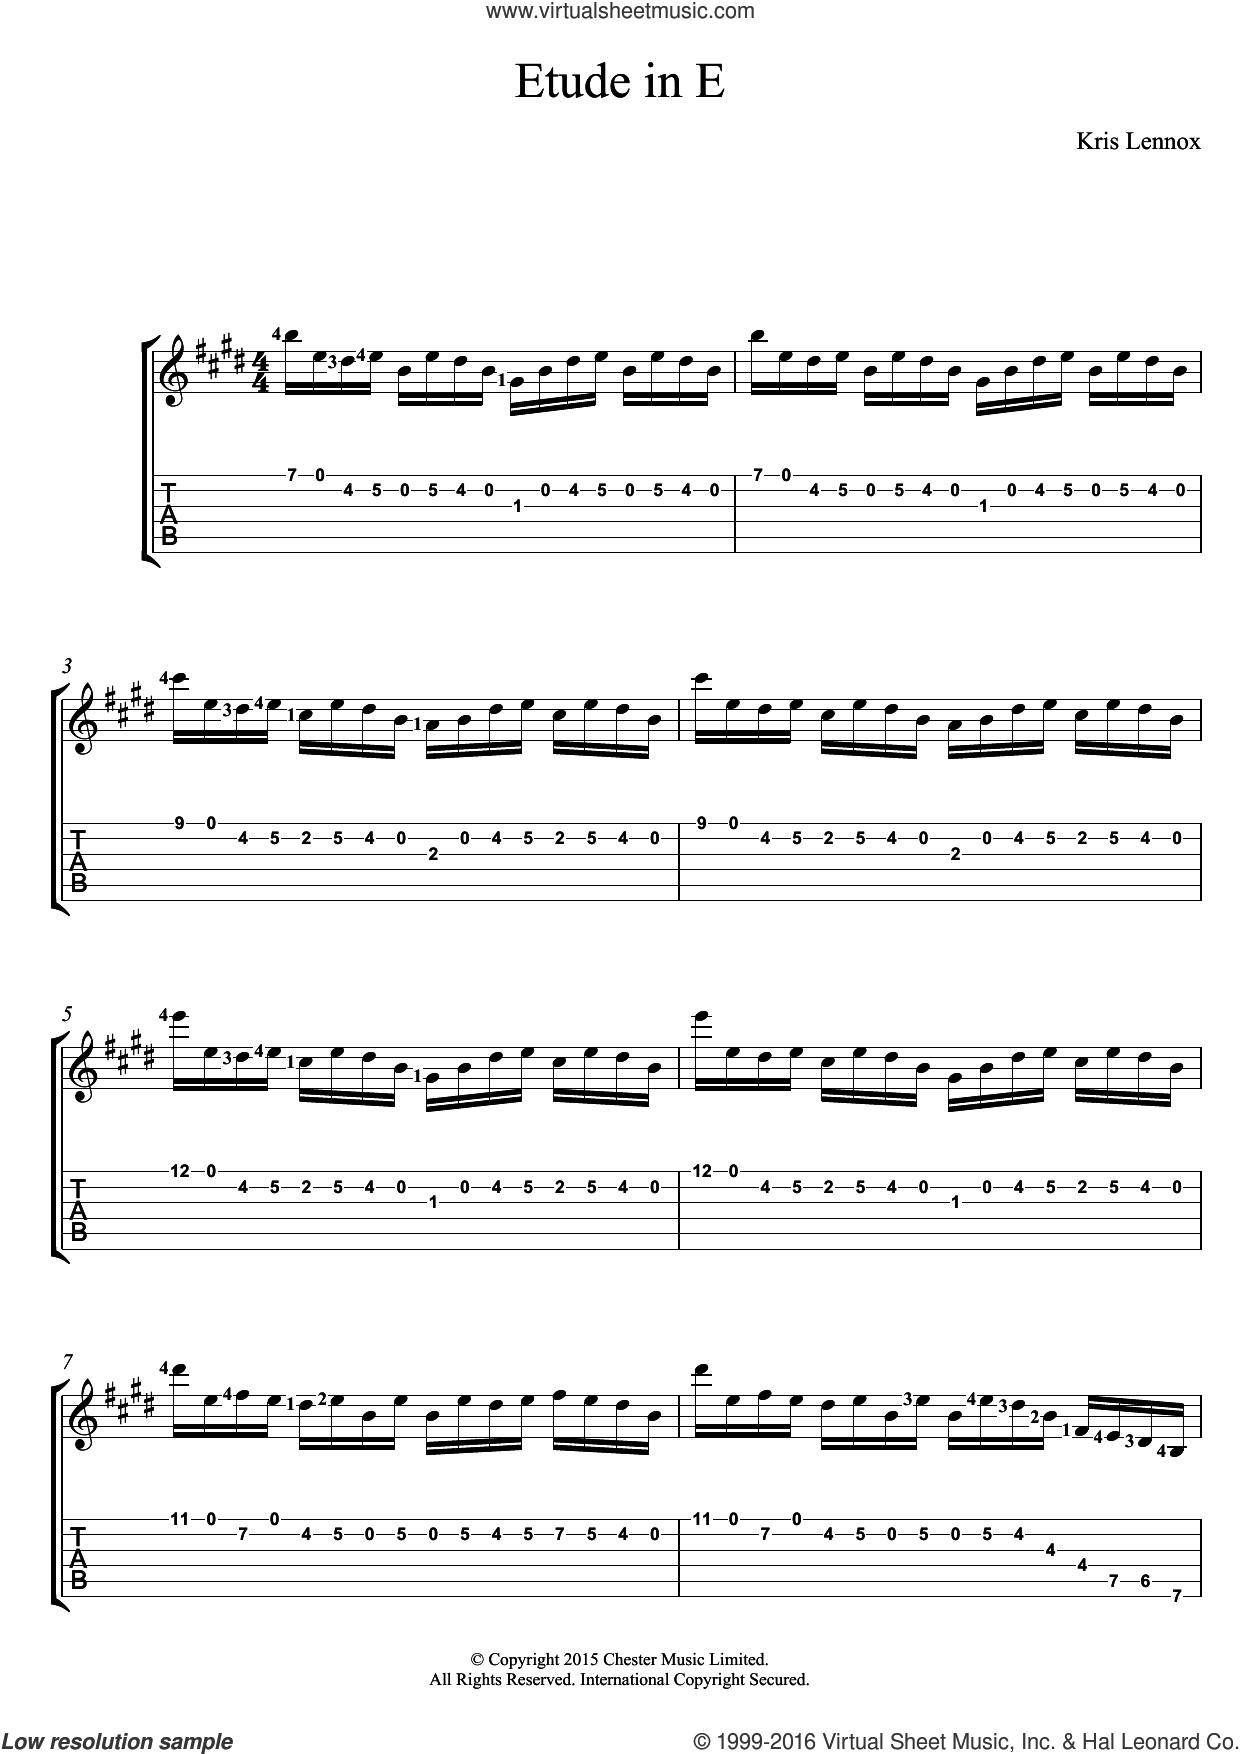 Etude In E sheet music for guitar (tablature) by Kris Lennox. Score Image Preview.